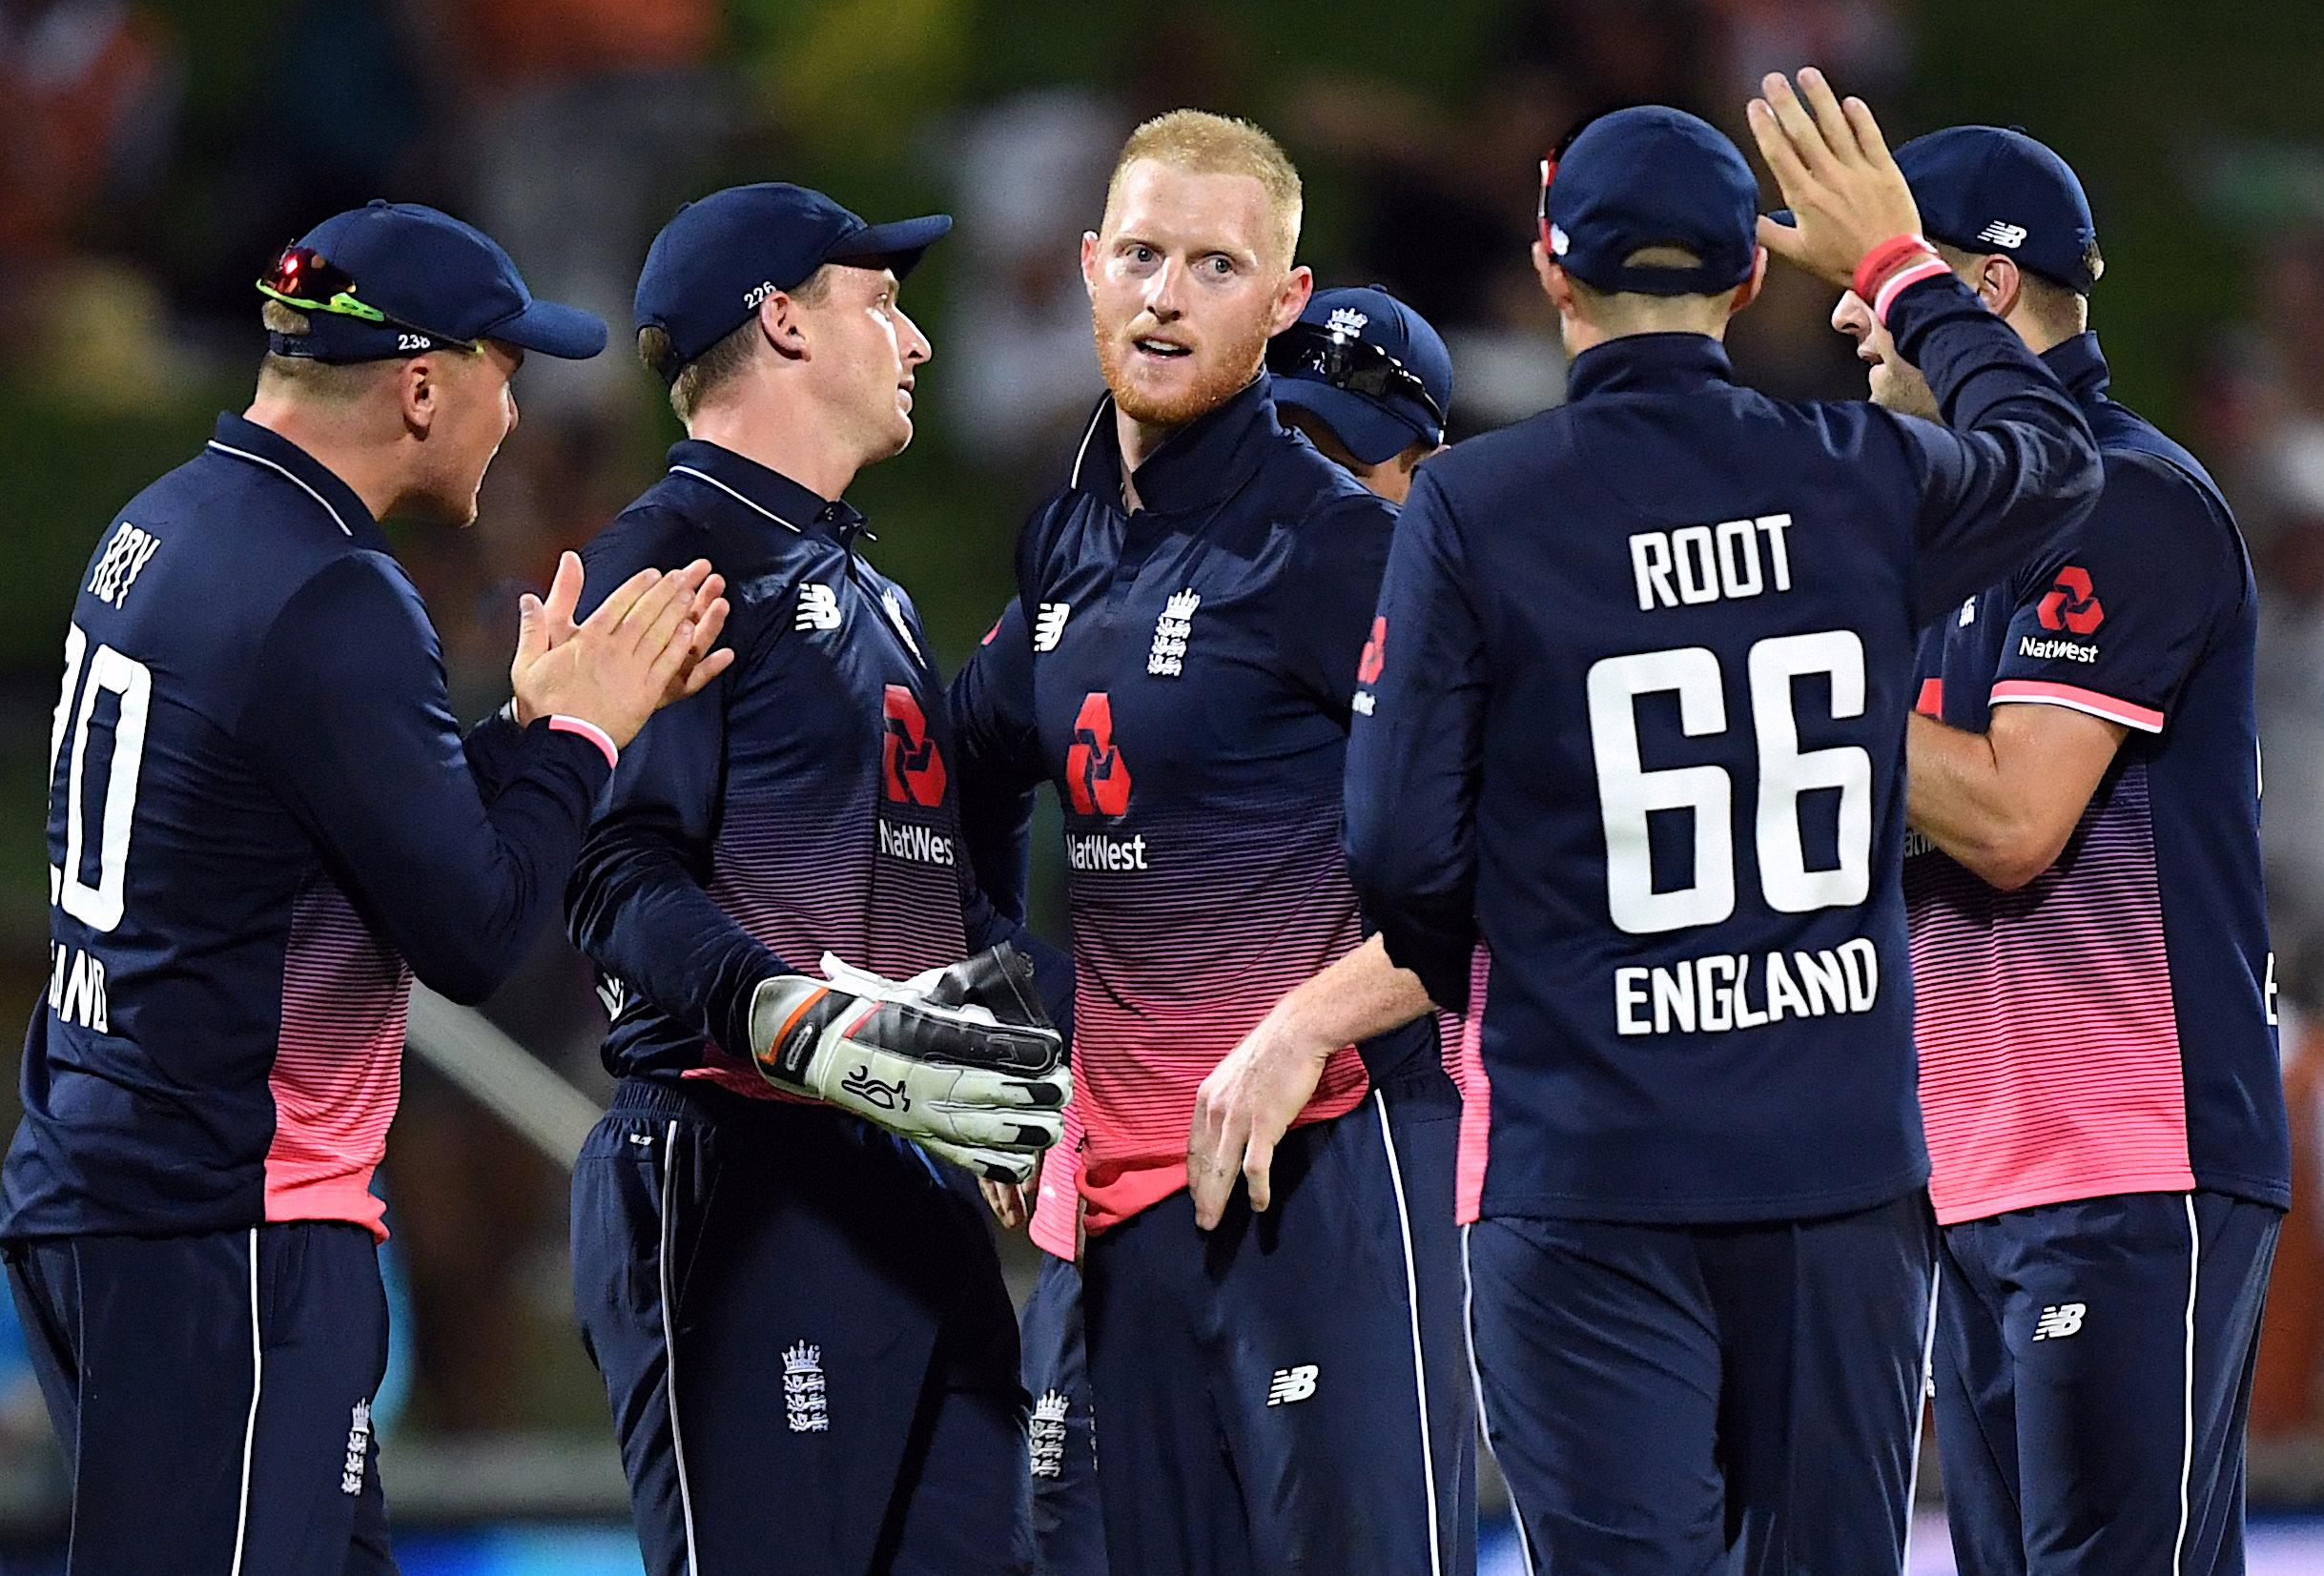 Ben Stokes took two wickets on his return to England duty